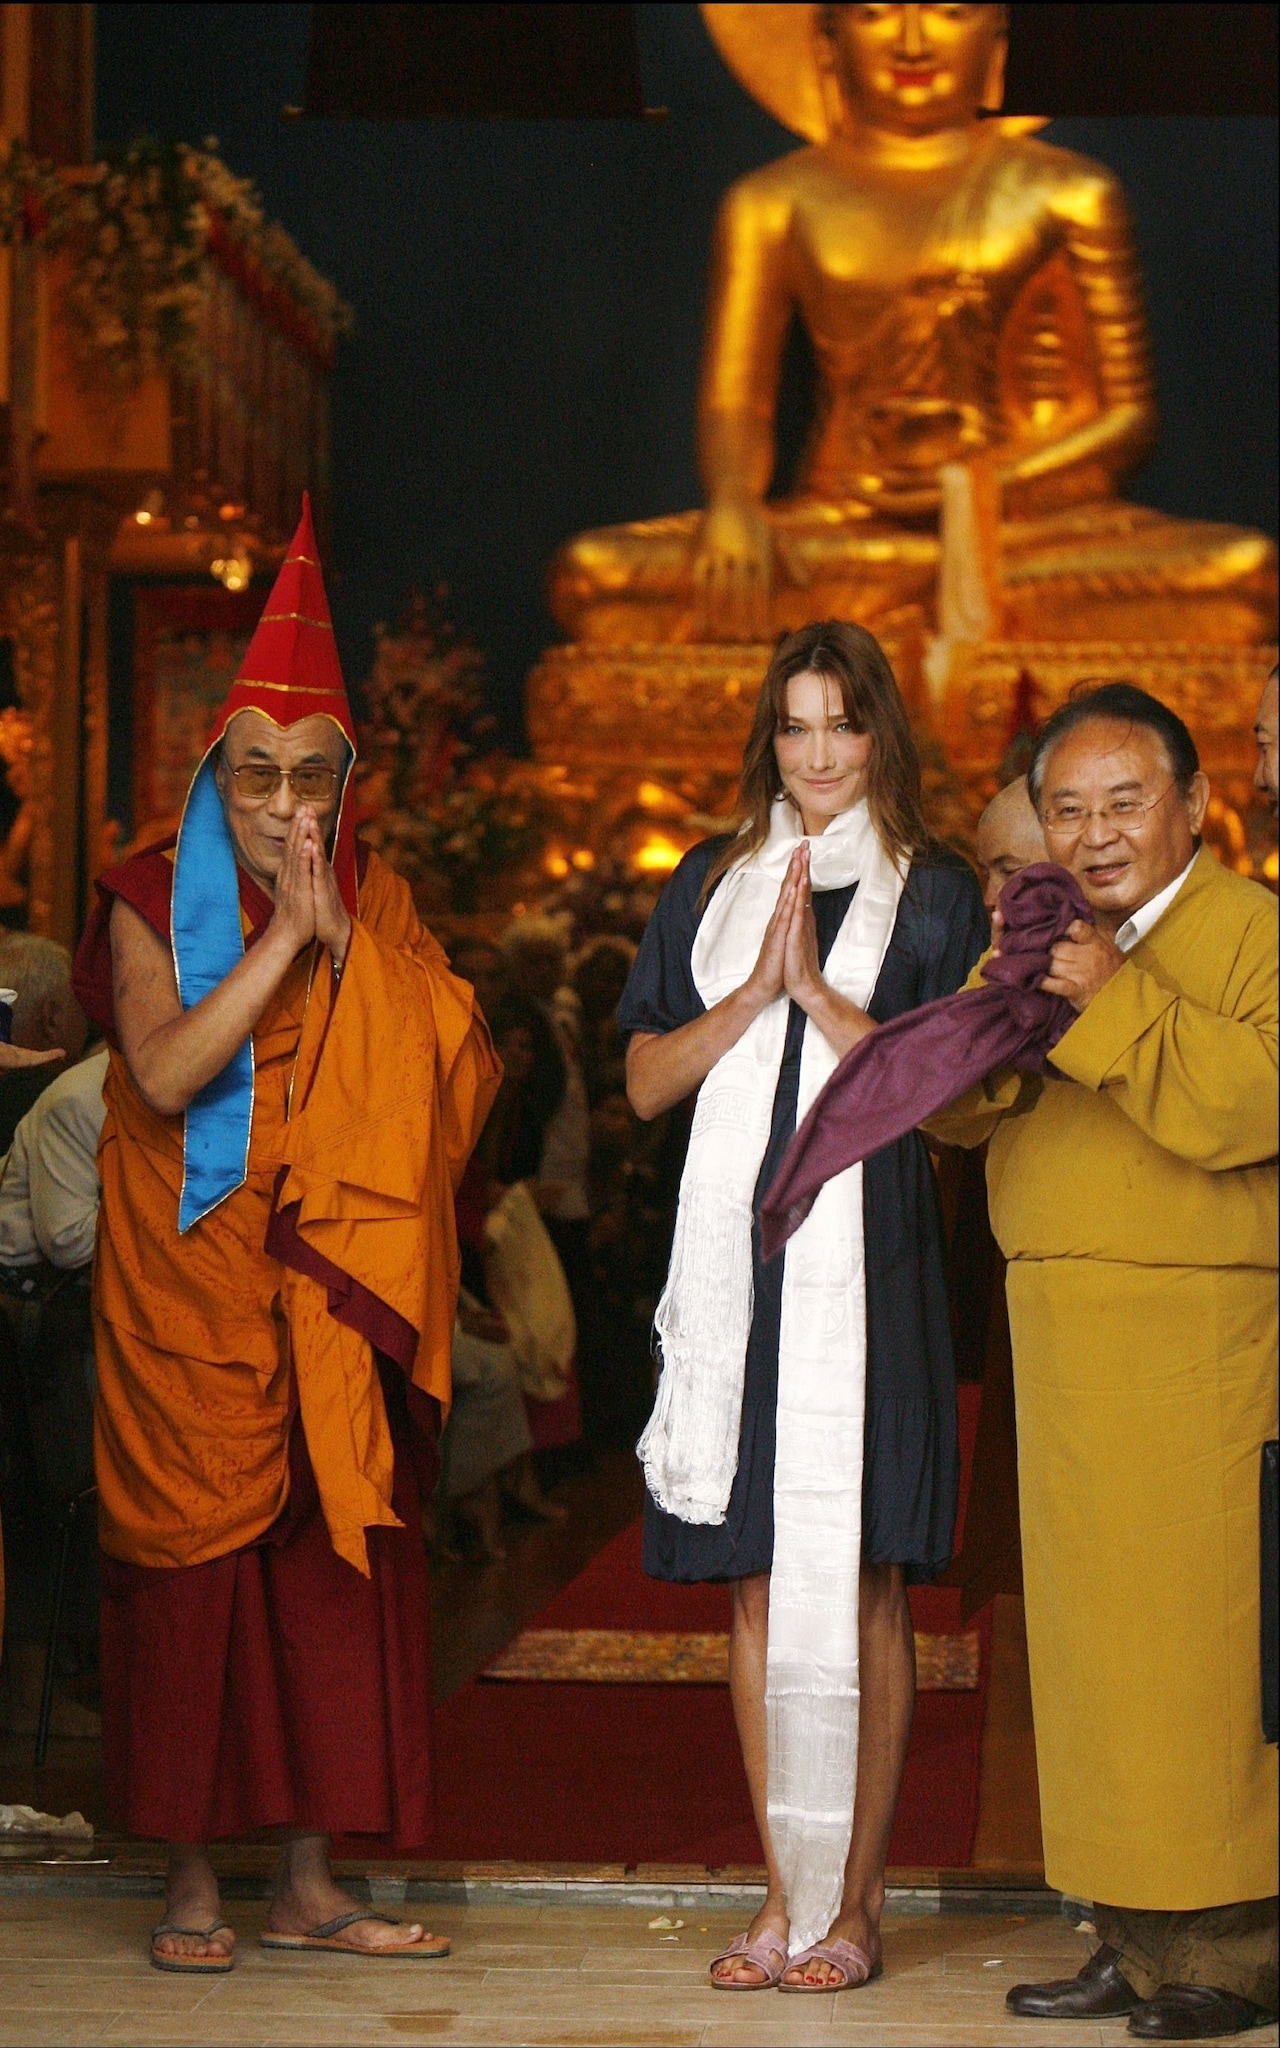 Puja buddhism definition of sexual misconduct